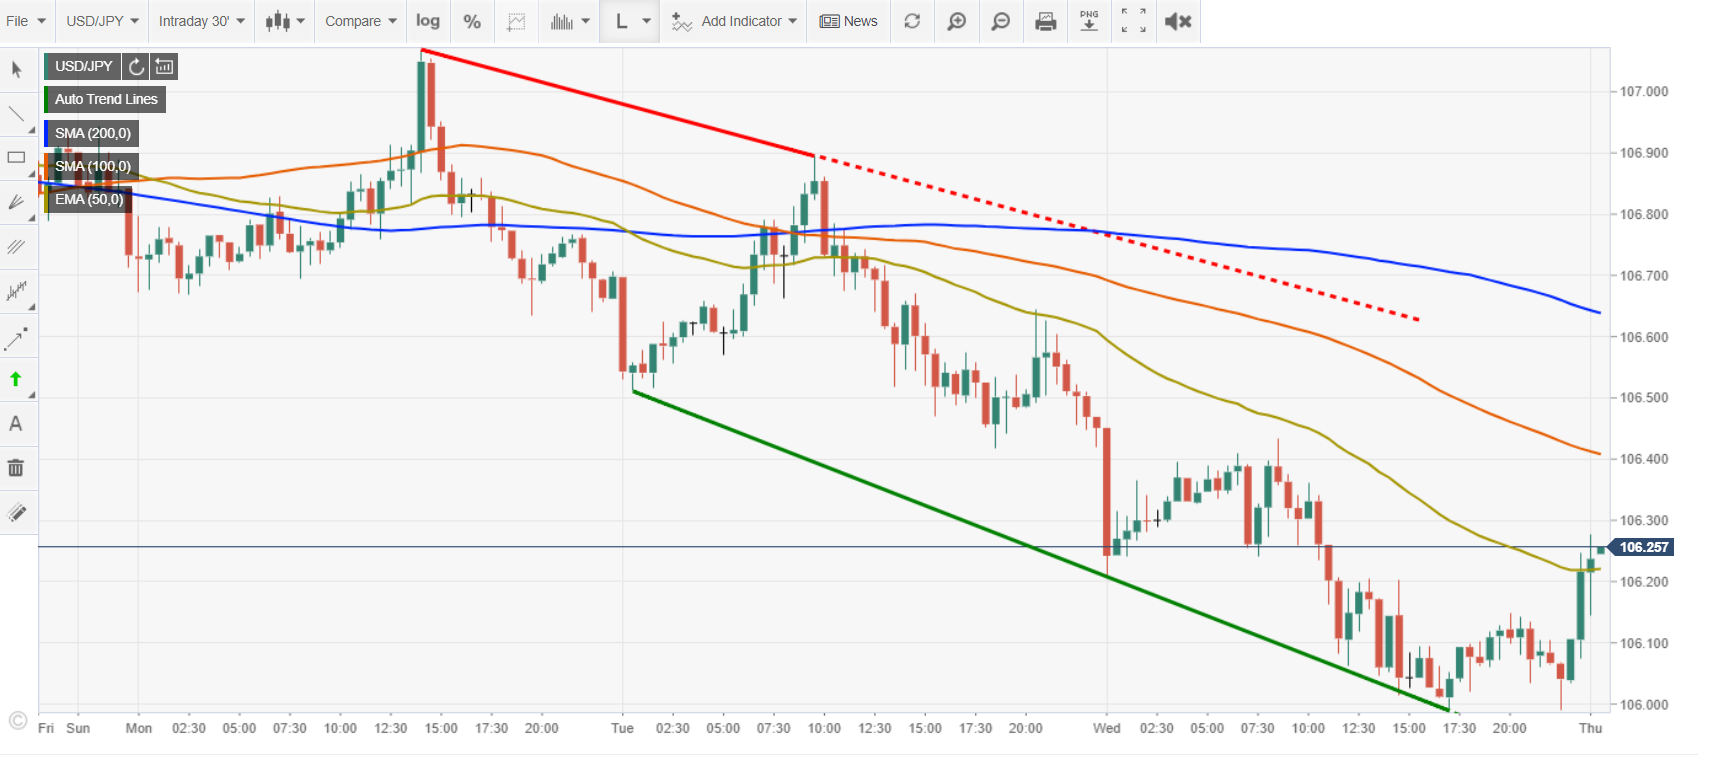 FXSTREET USDJPY Intraday Chart - 07 May 2020